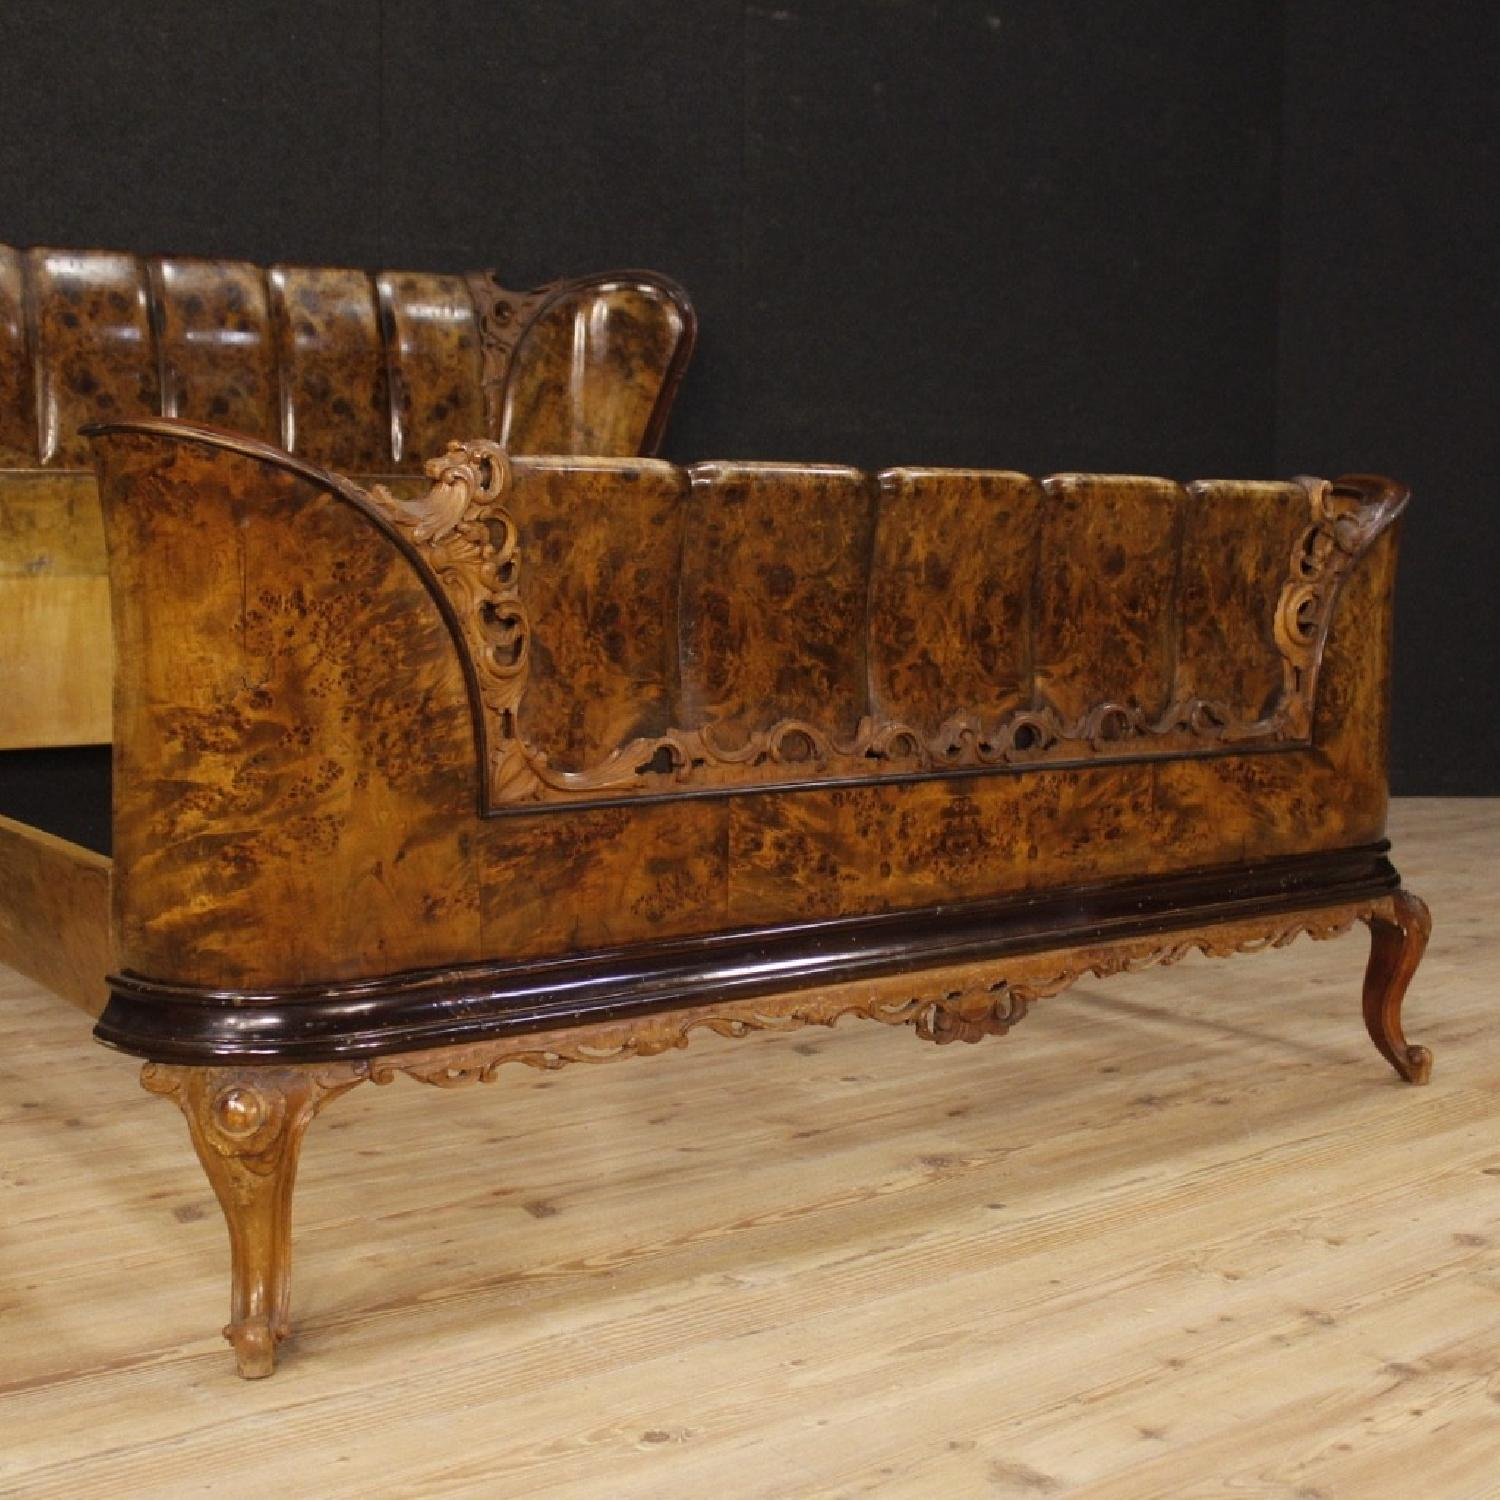 20th Century Cherry, Beech, Burl Walnut Italian Double Bed-1